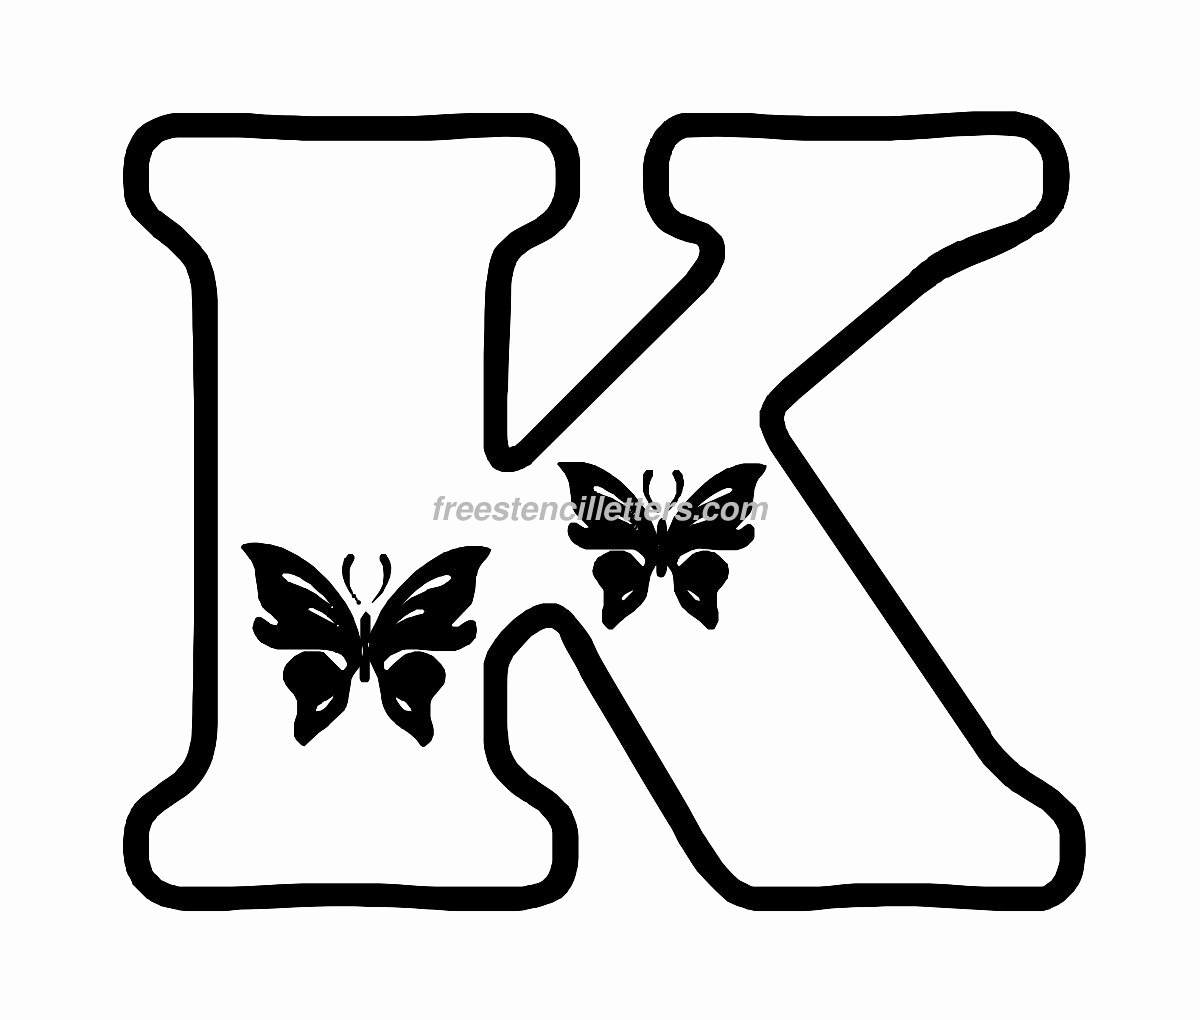 Free Printable Alphabet Stencils Templates Best Of butterfly Stencil Letters Archives Free Stencil Letters